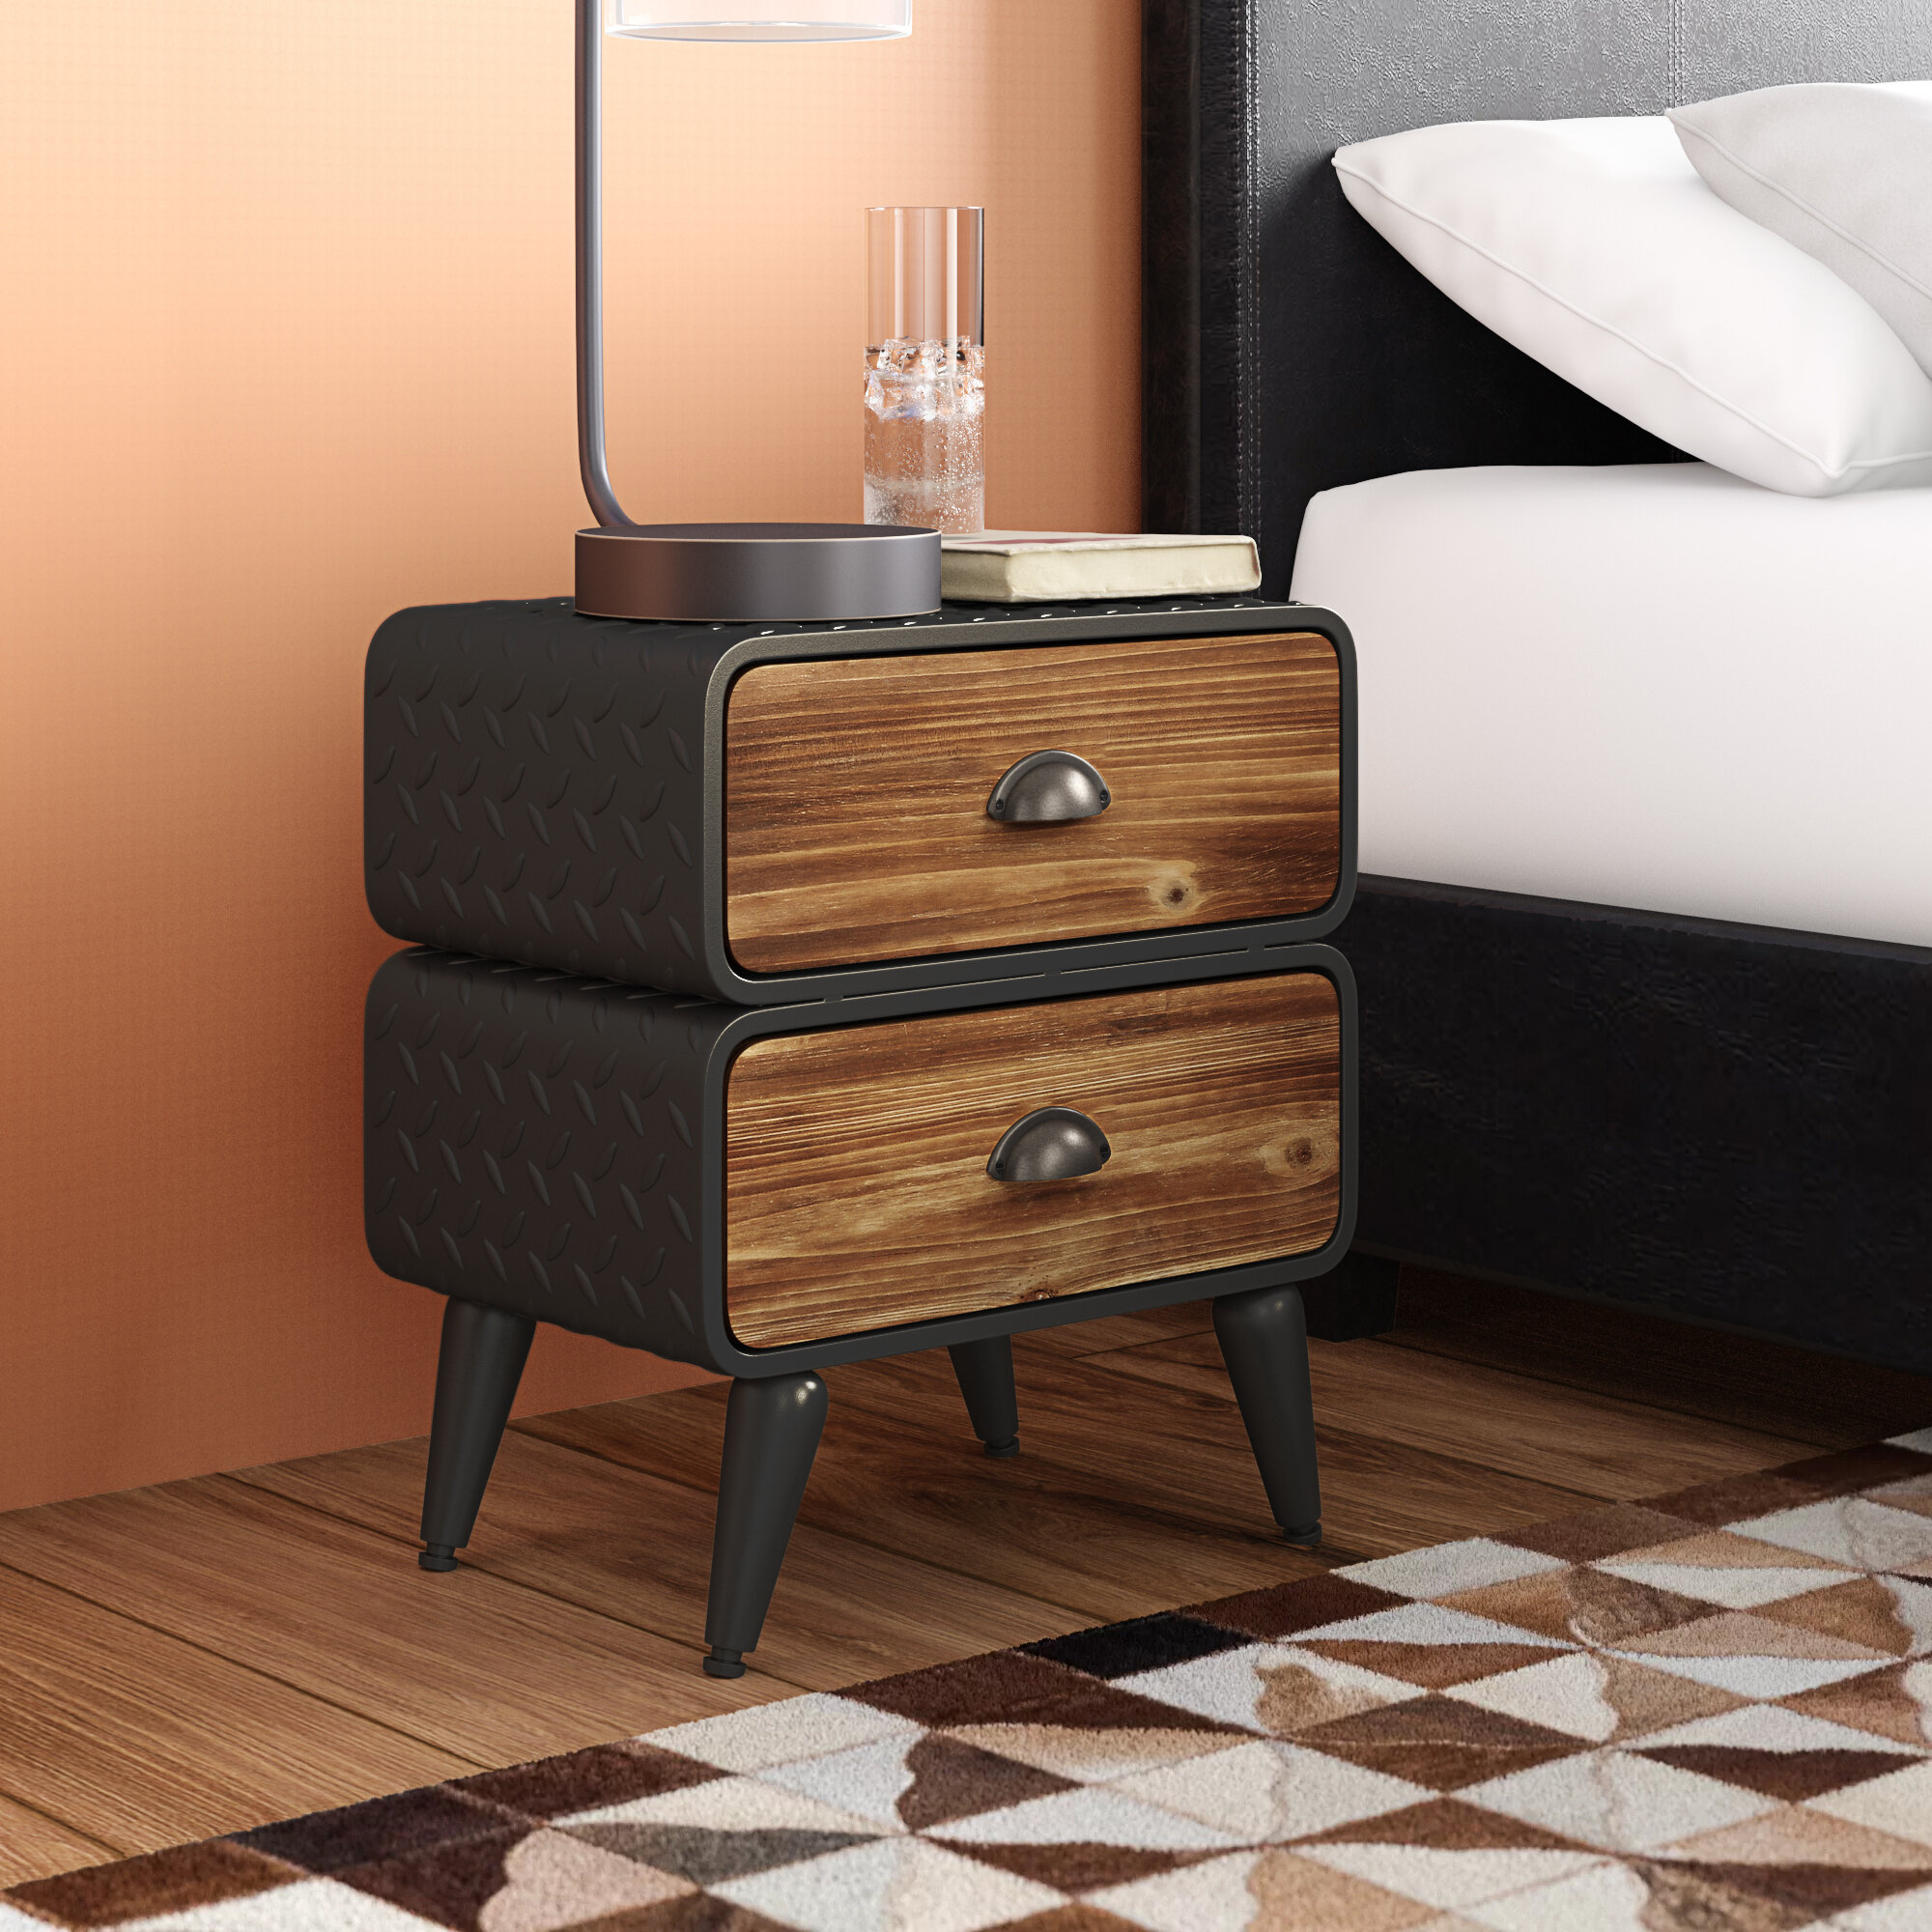 buy popular c5c4d 94cd2 Krish Rounded 2 Drawer Nightstand